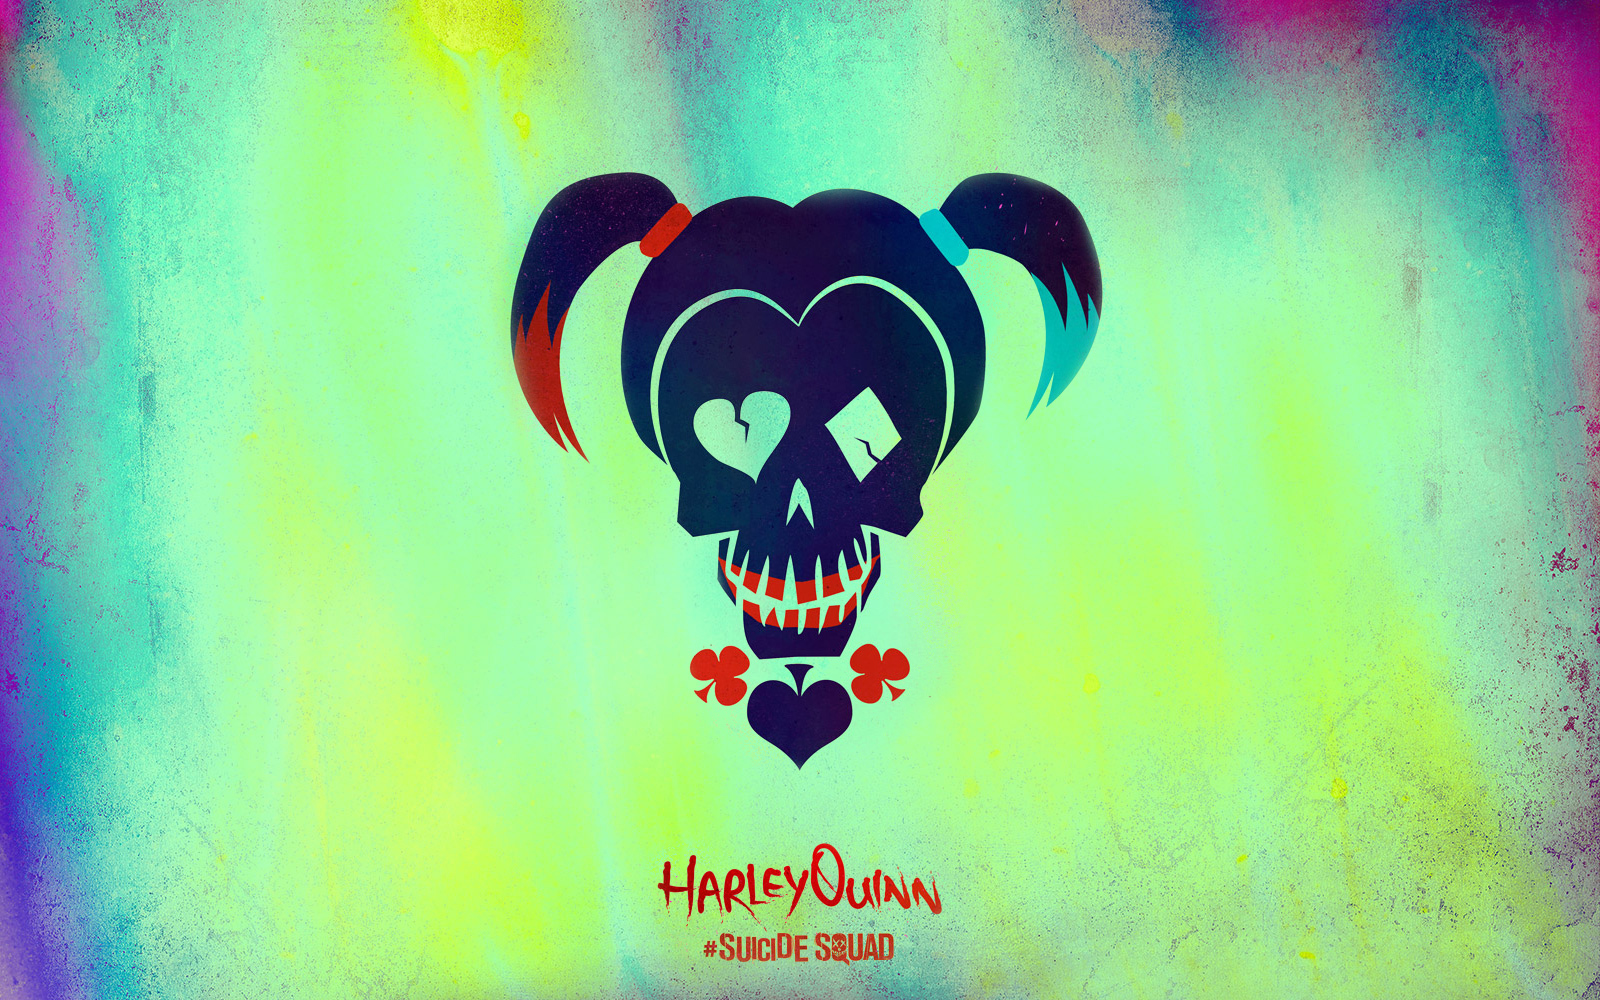 Harley Quinn Logo Wallpaper